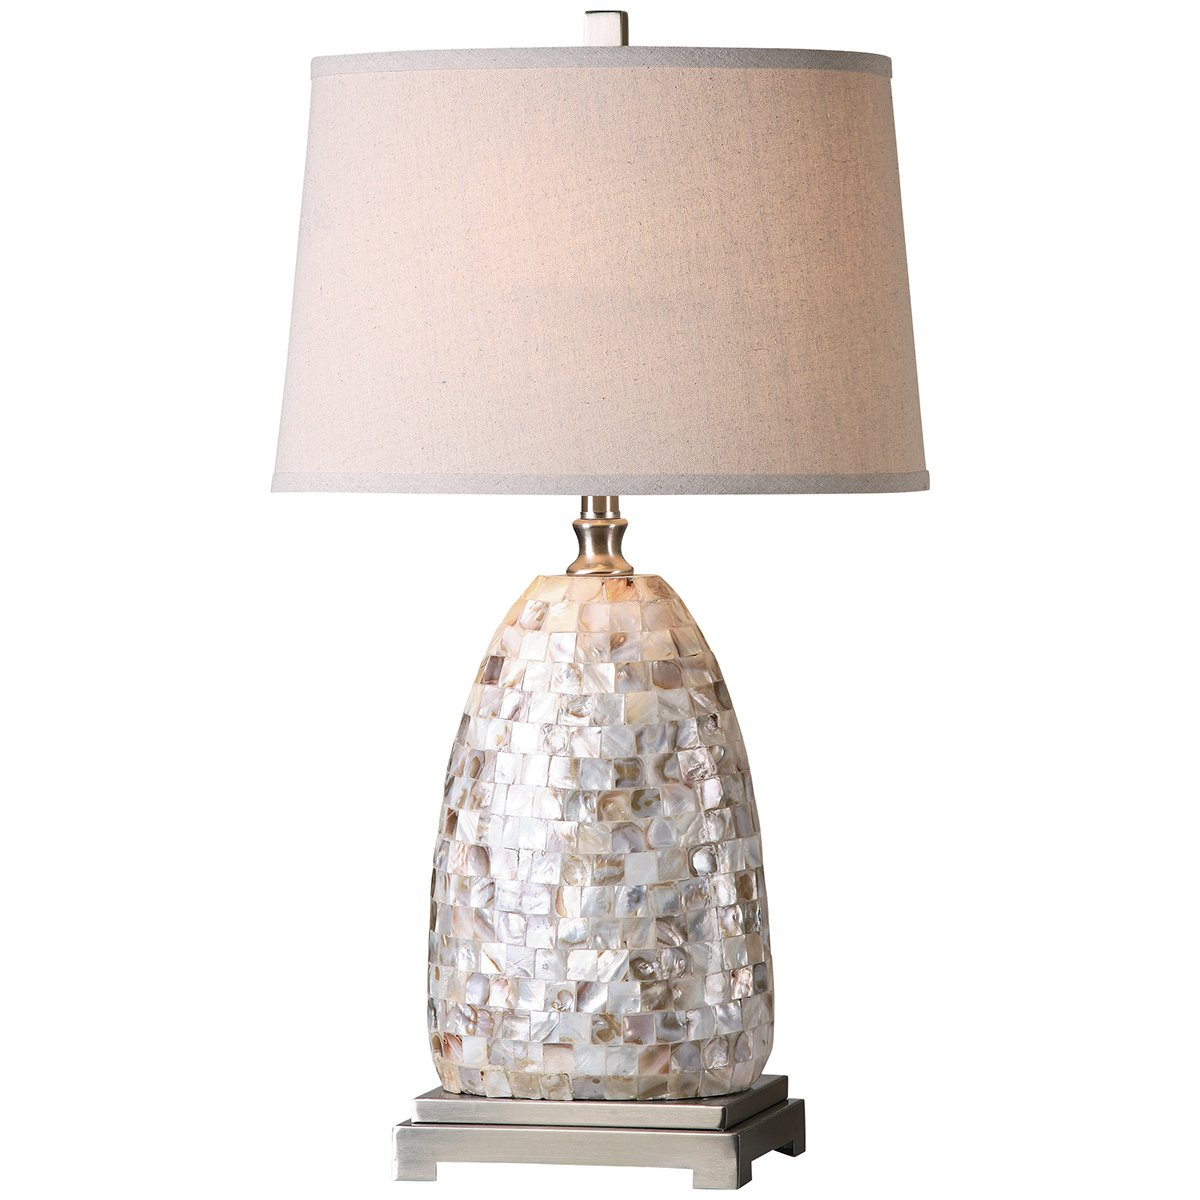 Amazon.com: Uttermost 26505 Capurso Capiz Shell Table Lamp: Home U0026 Kitchen